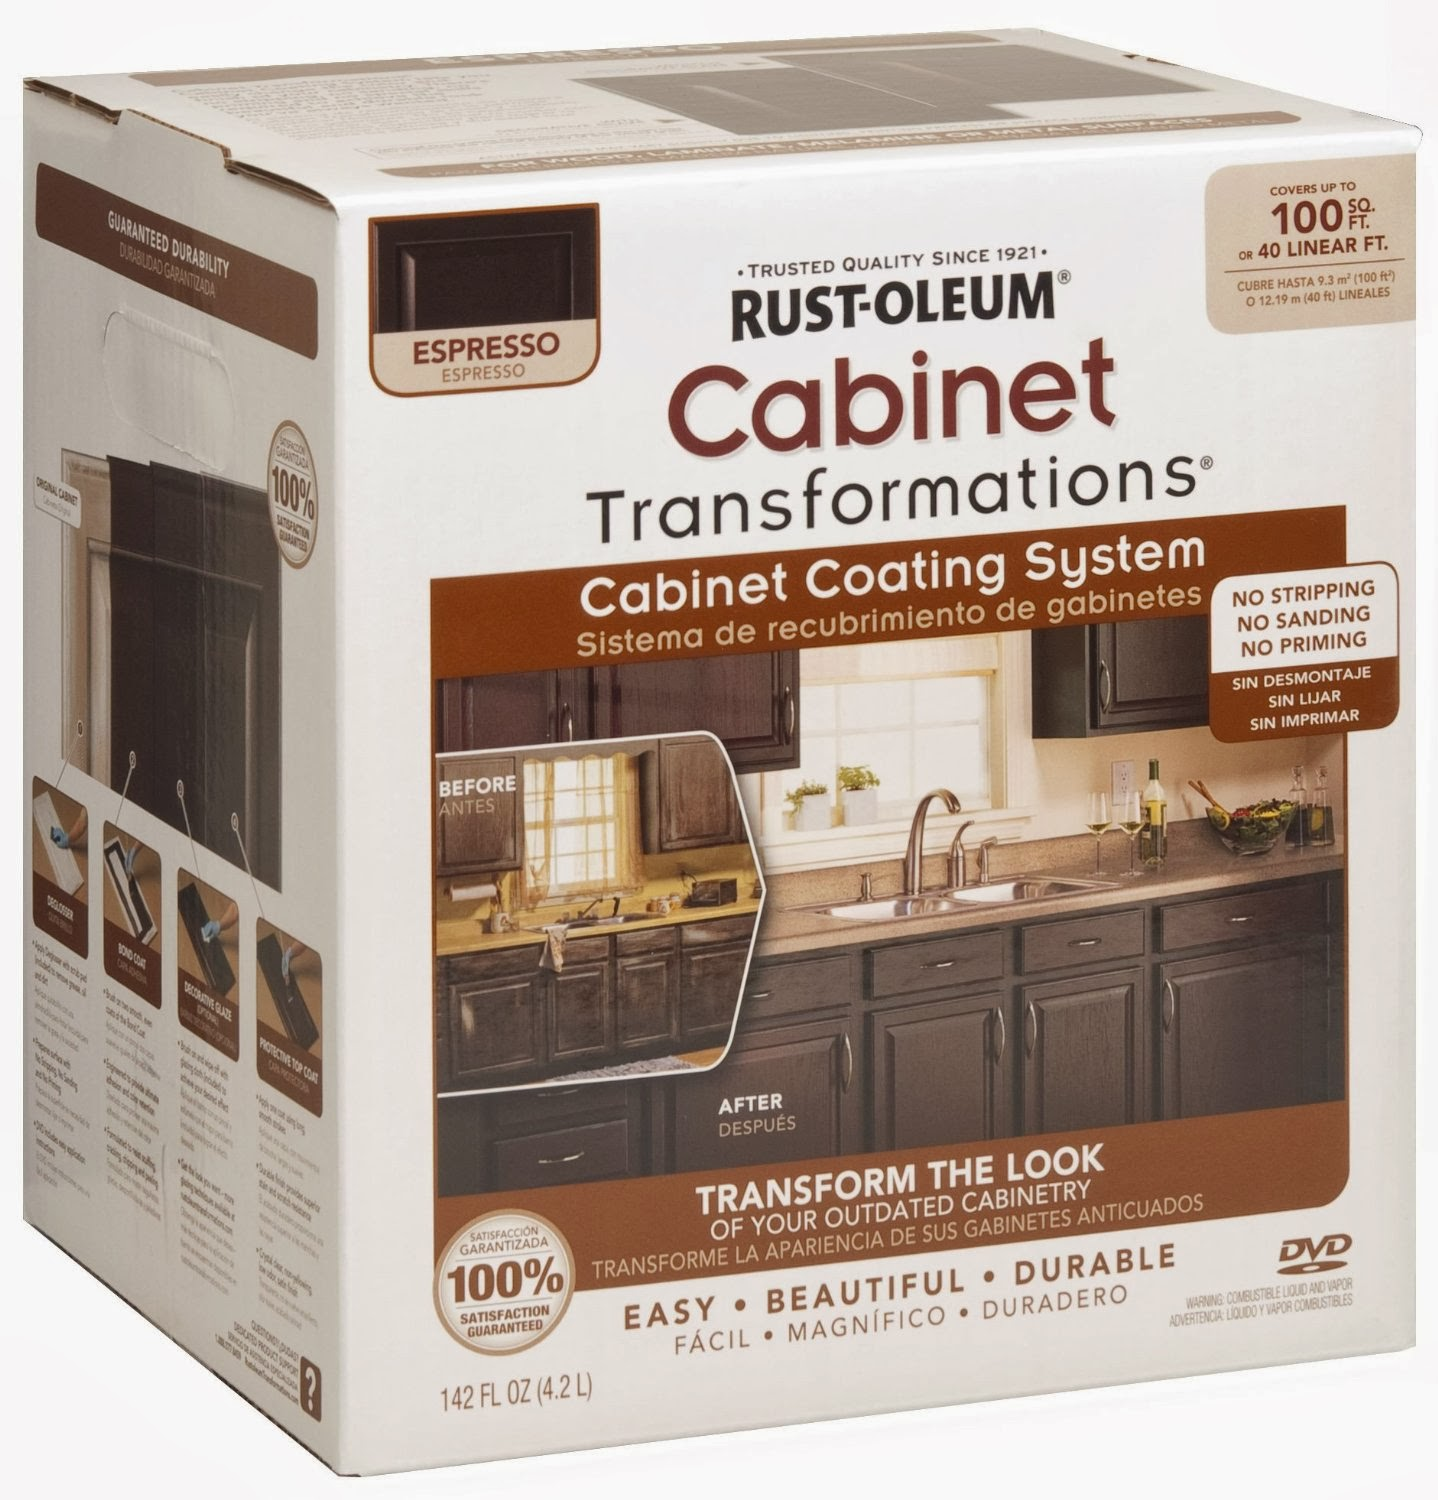 Kitchen Transformation Before And After: Rust-Oleum Cabinet Transformation Review (Before & After